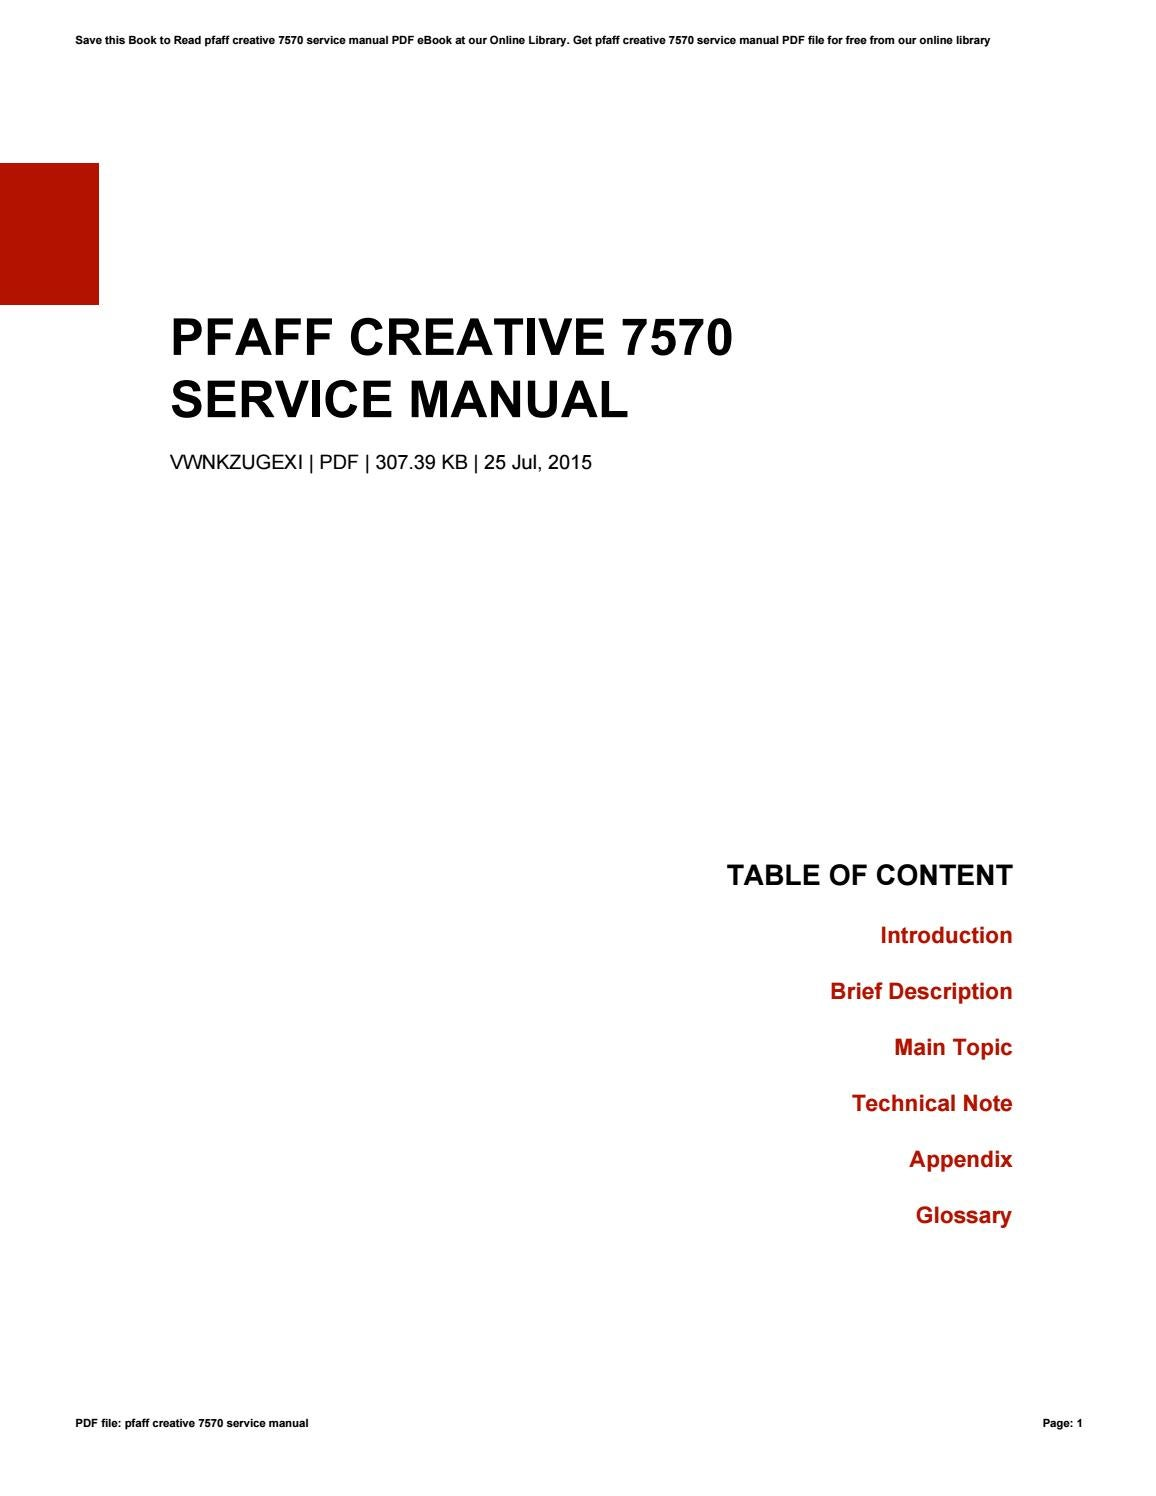 Download pfaff 7570 repair manual | diigo groups.